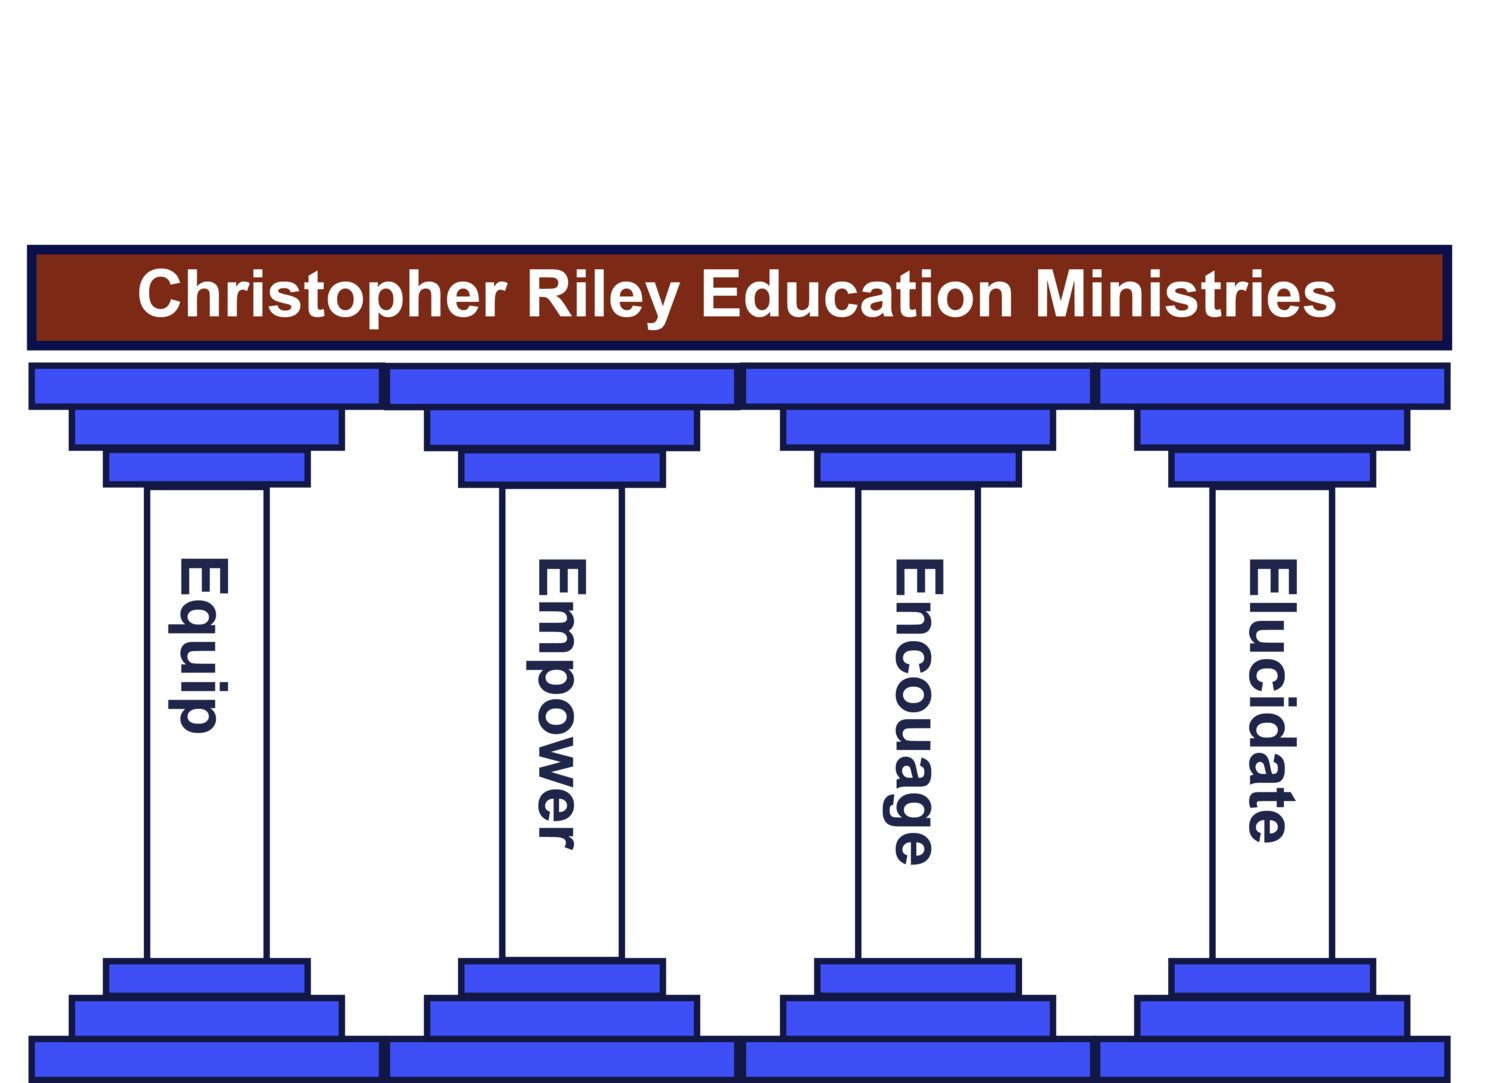 Christopher Riley Education Ministries